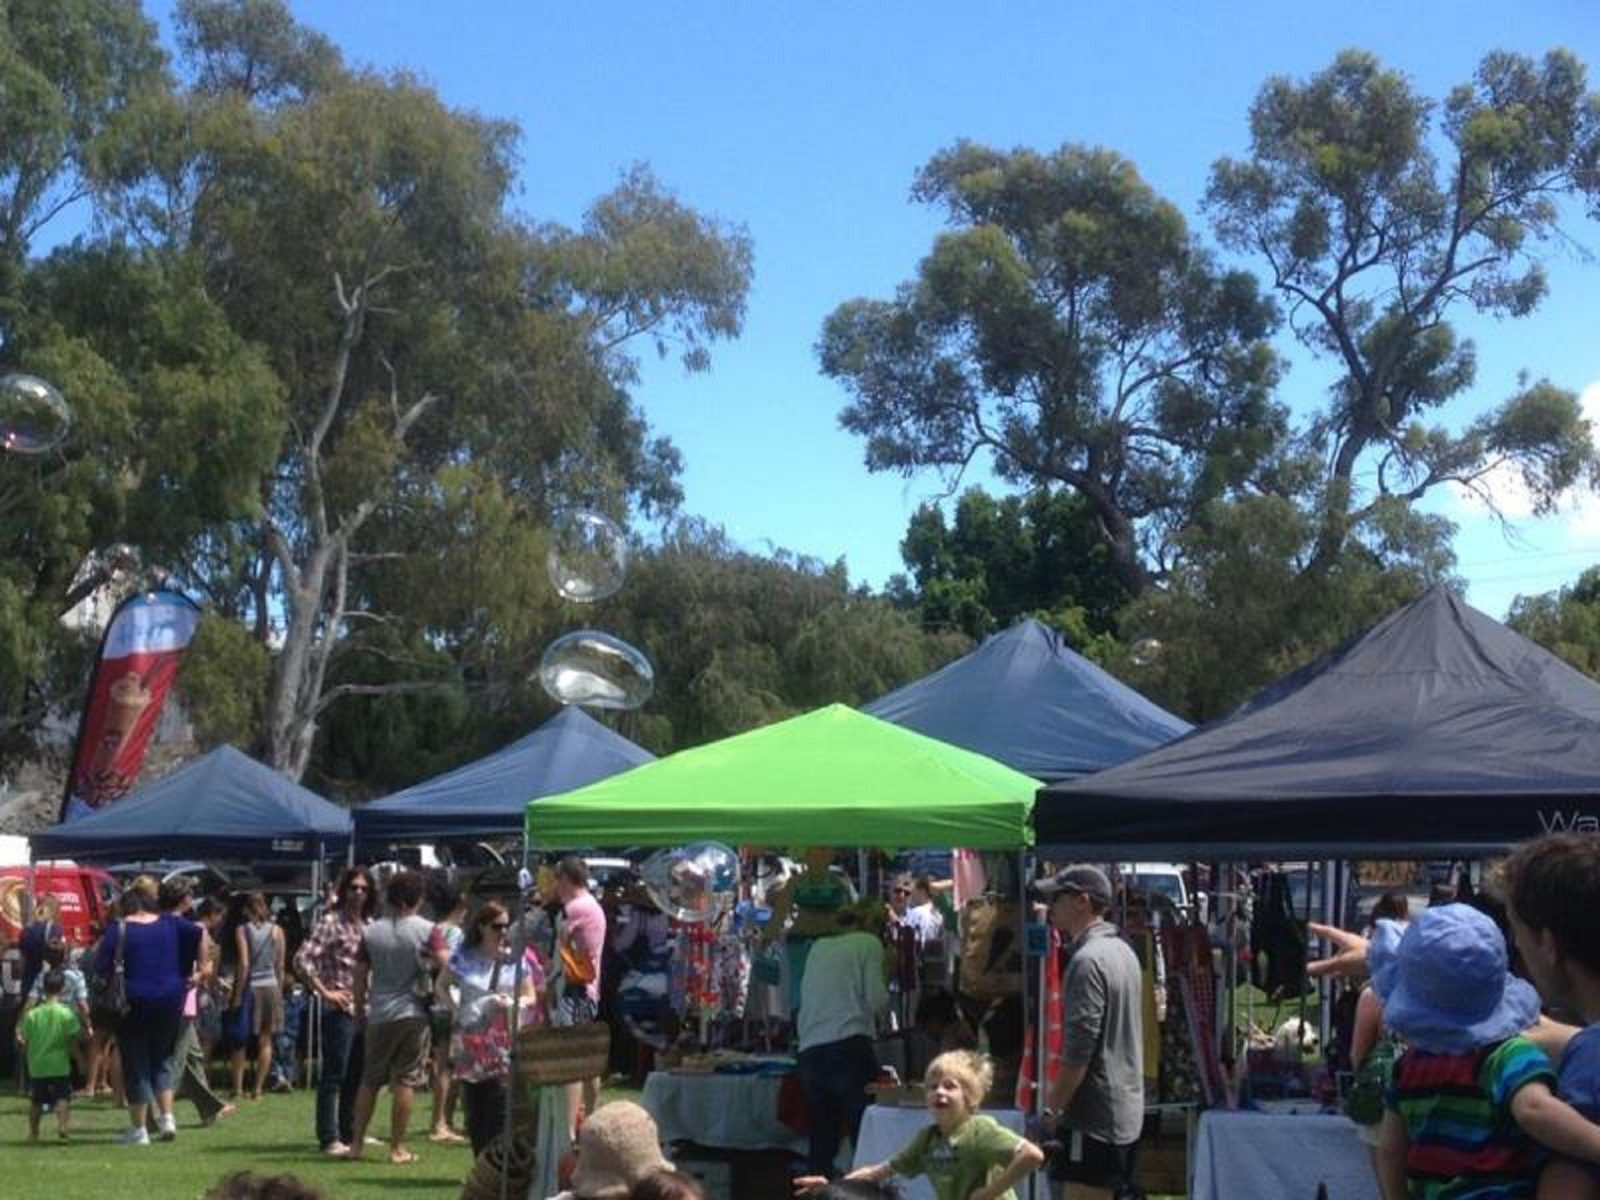 Growers Green Farmers Market, Beaconsfield, Western Australia